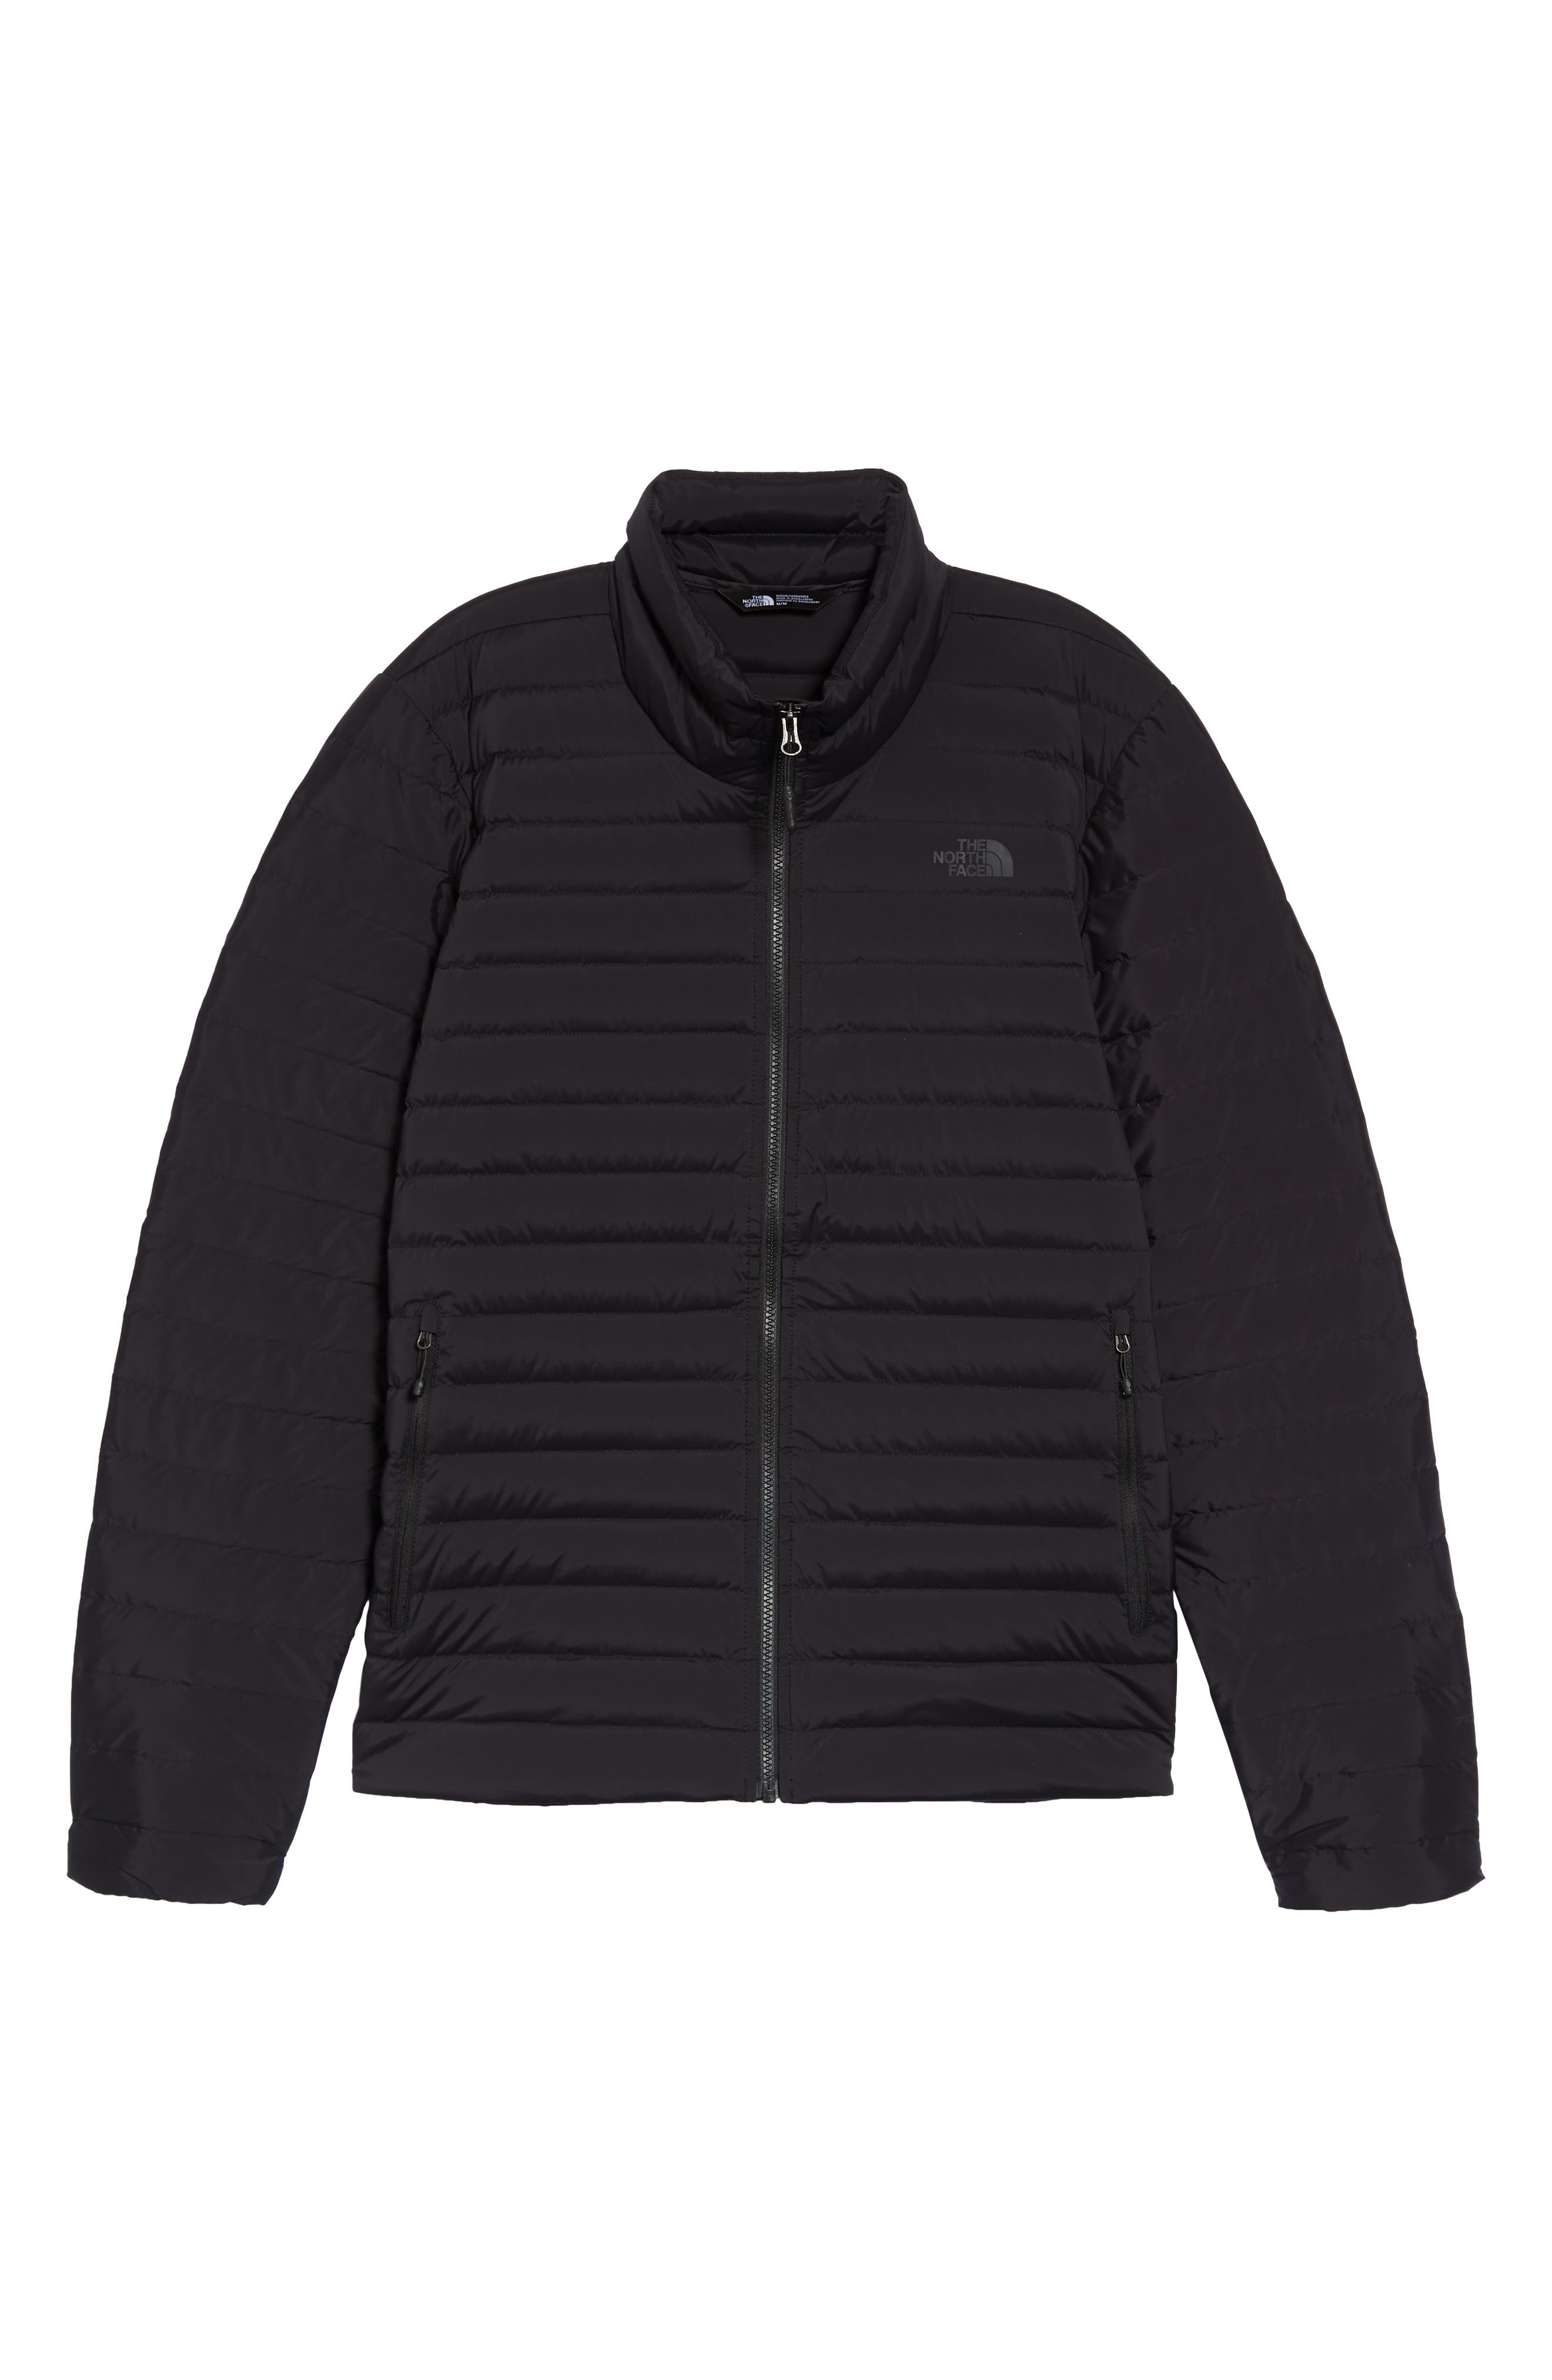 THE NORTH FACE, Packable Stretch Down Jacket, Alternate thumbnail 6, color, 001